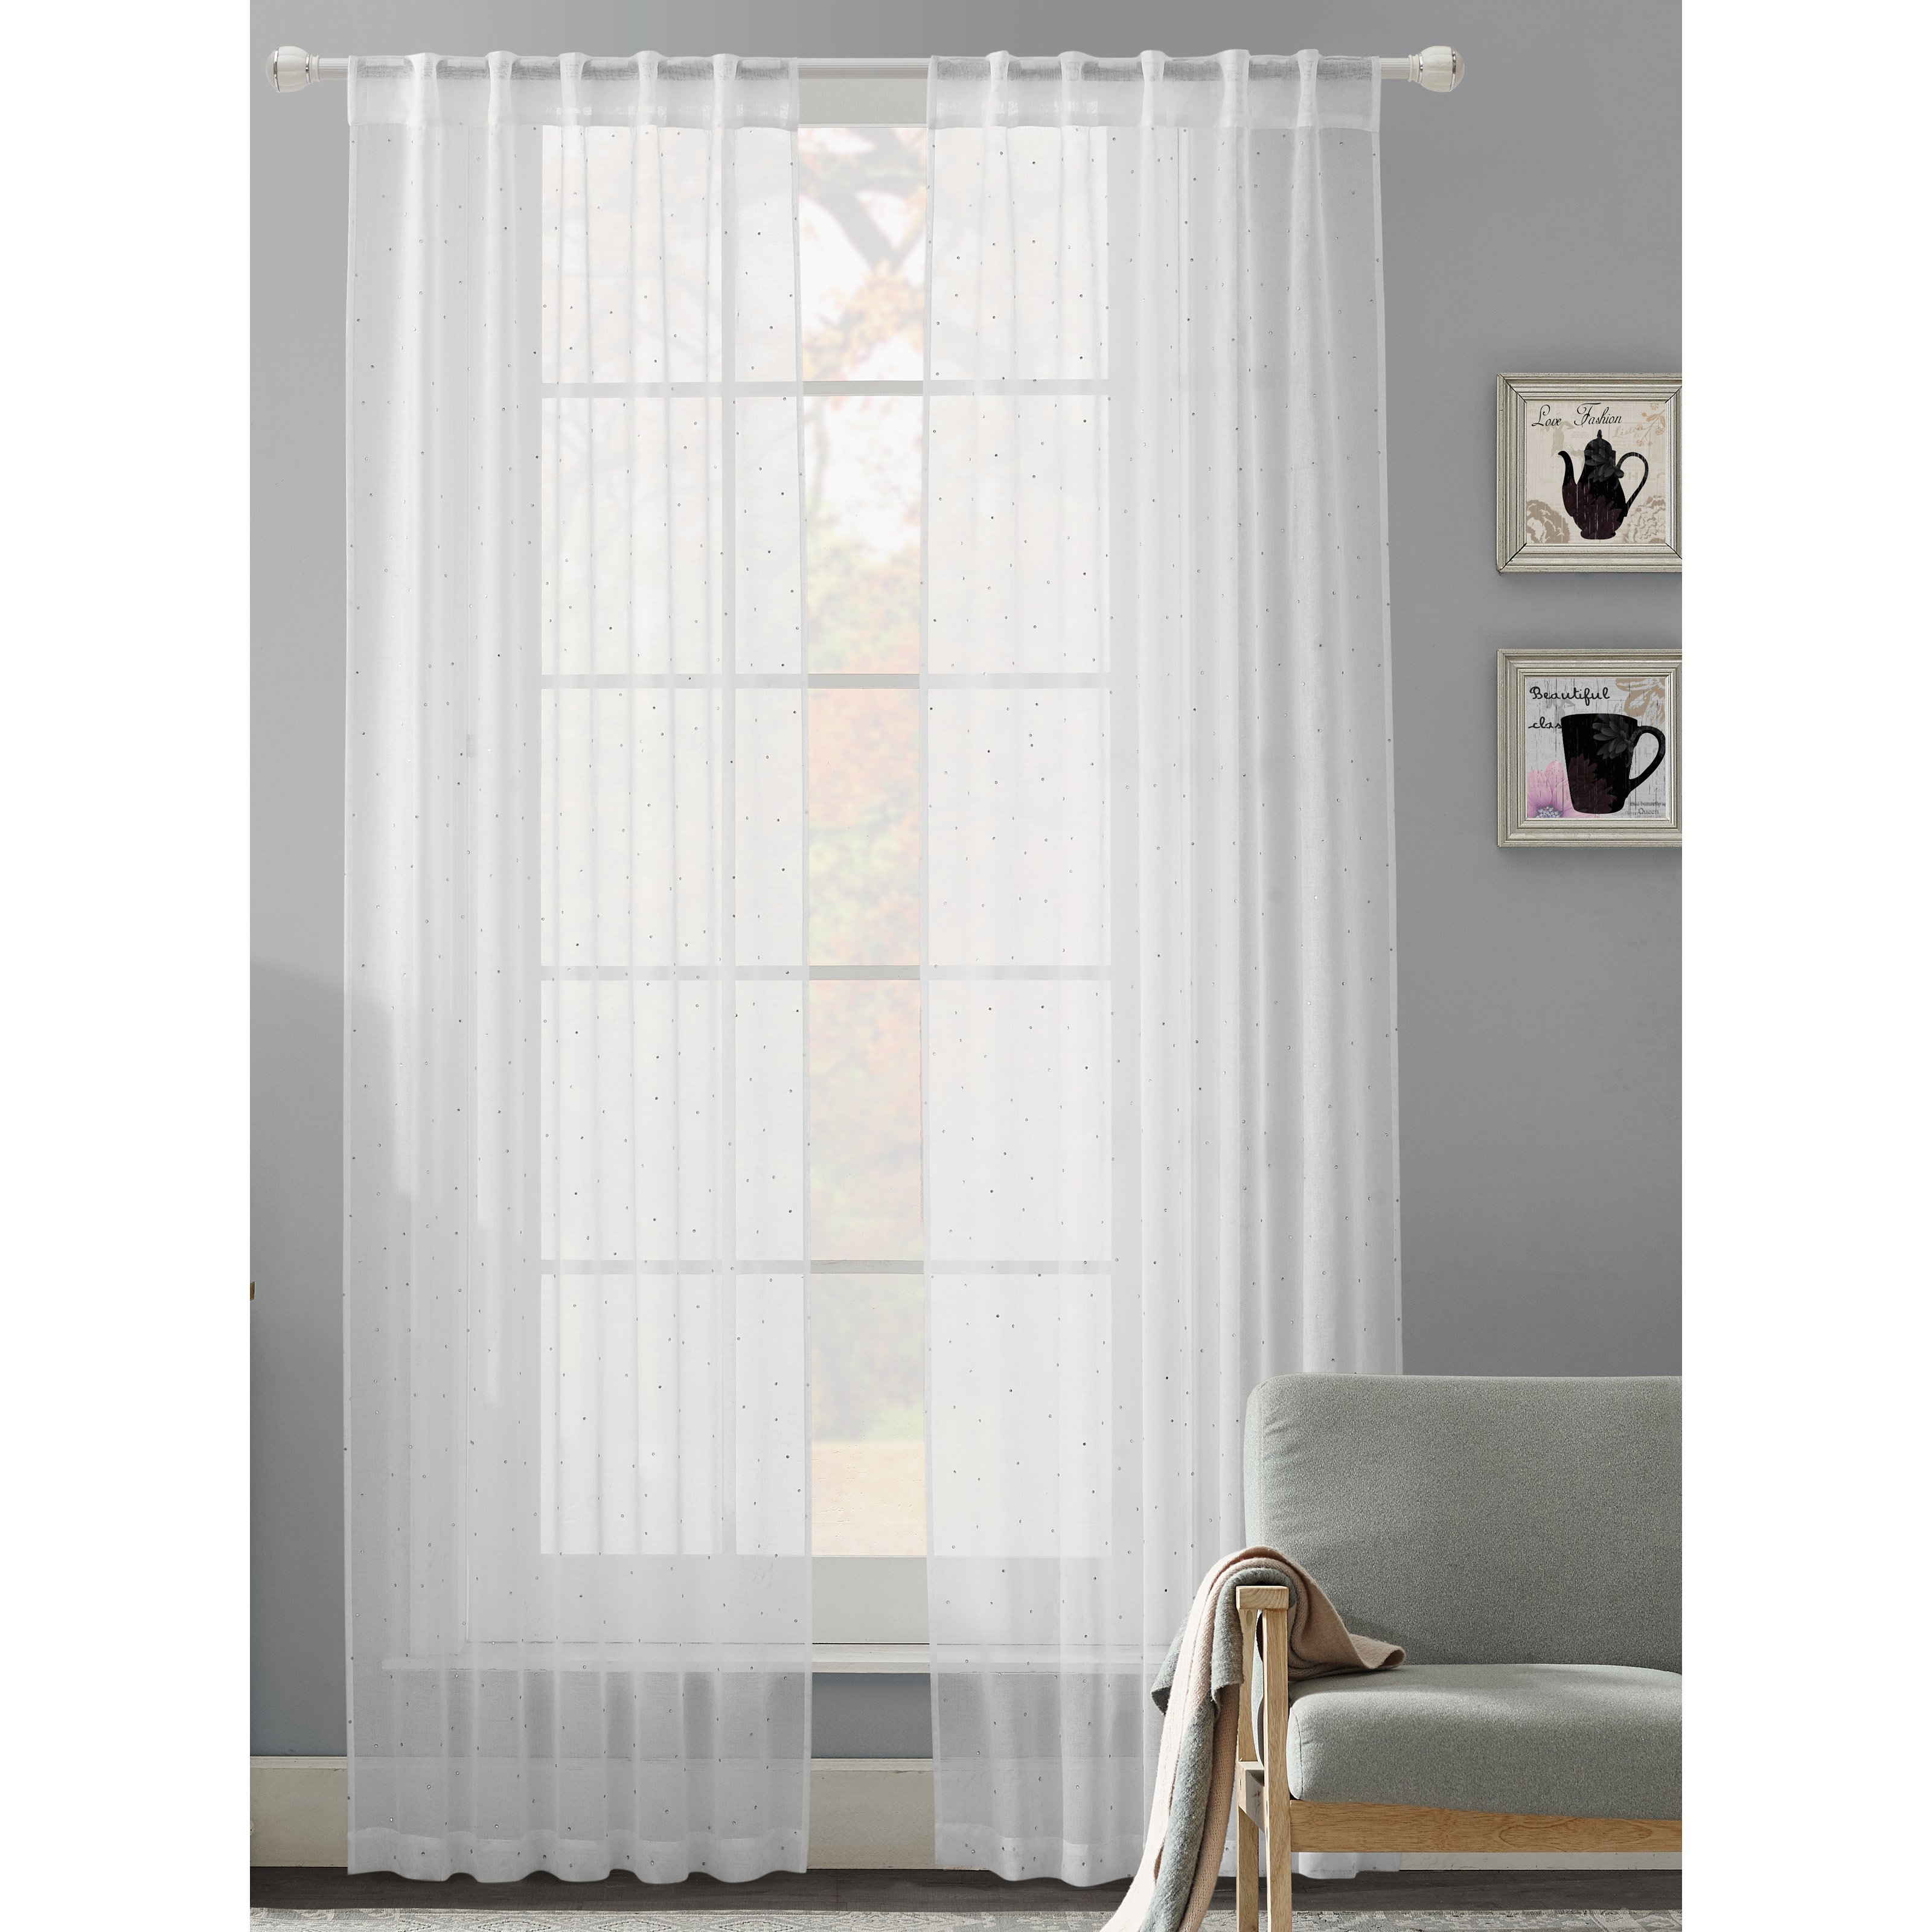 Dainty Home Window Curtains Hayneedle within sizing 3200 X 3200